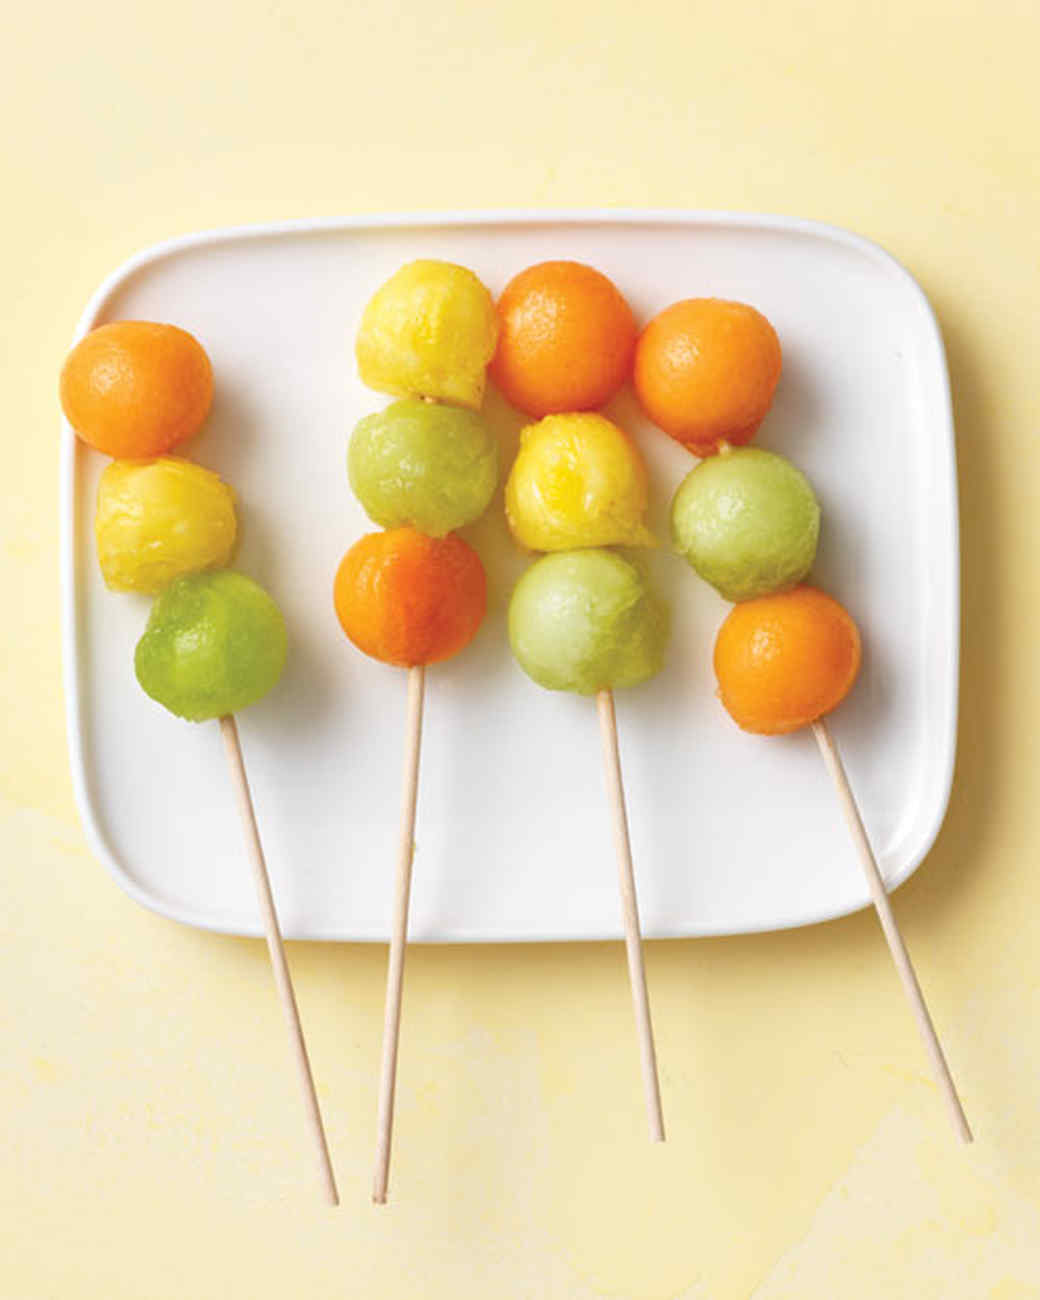 fruit-skewers-0511mld107144.jpg